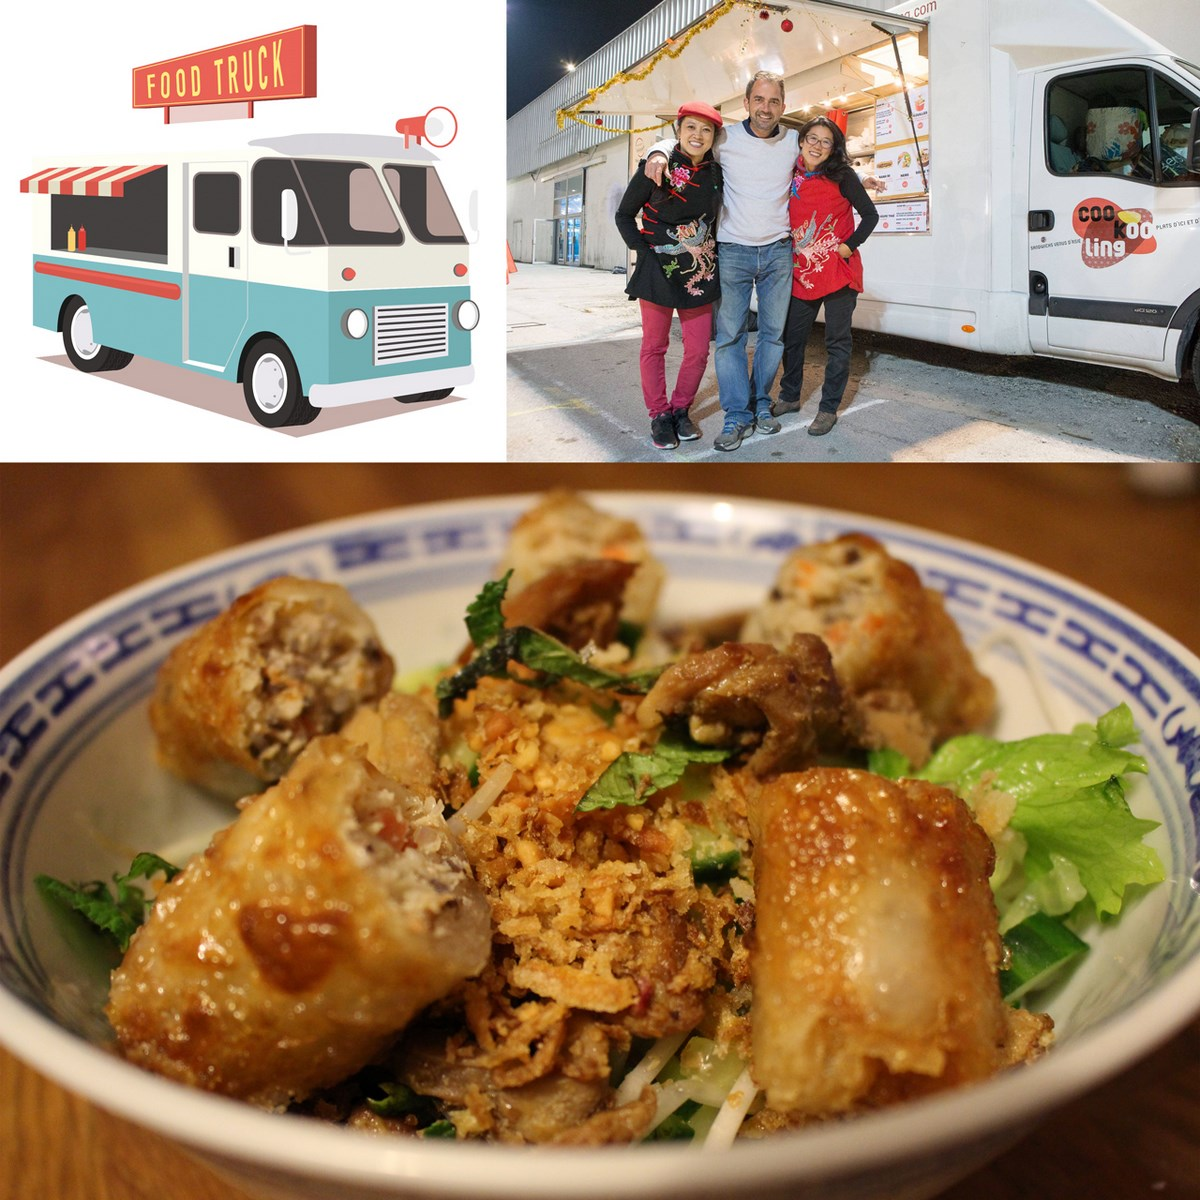 COOKOOLING // Le Food Truck aux saveurs d'Asie